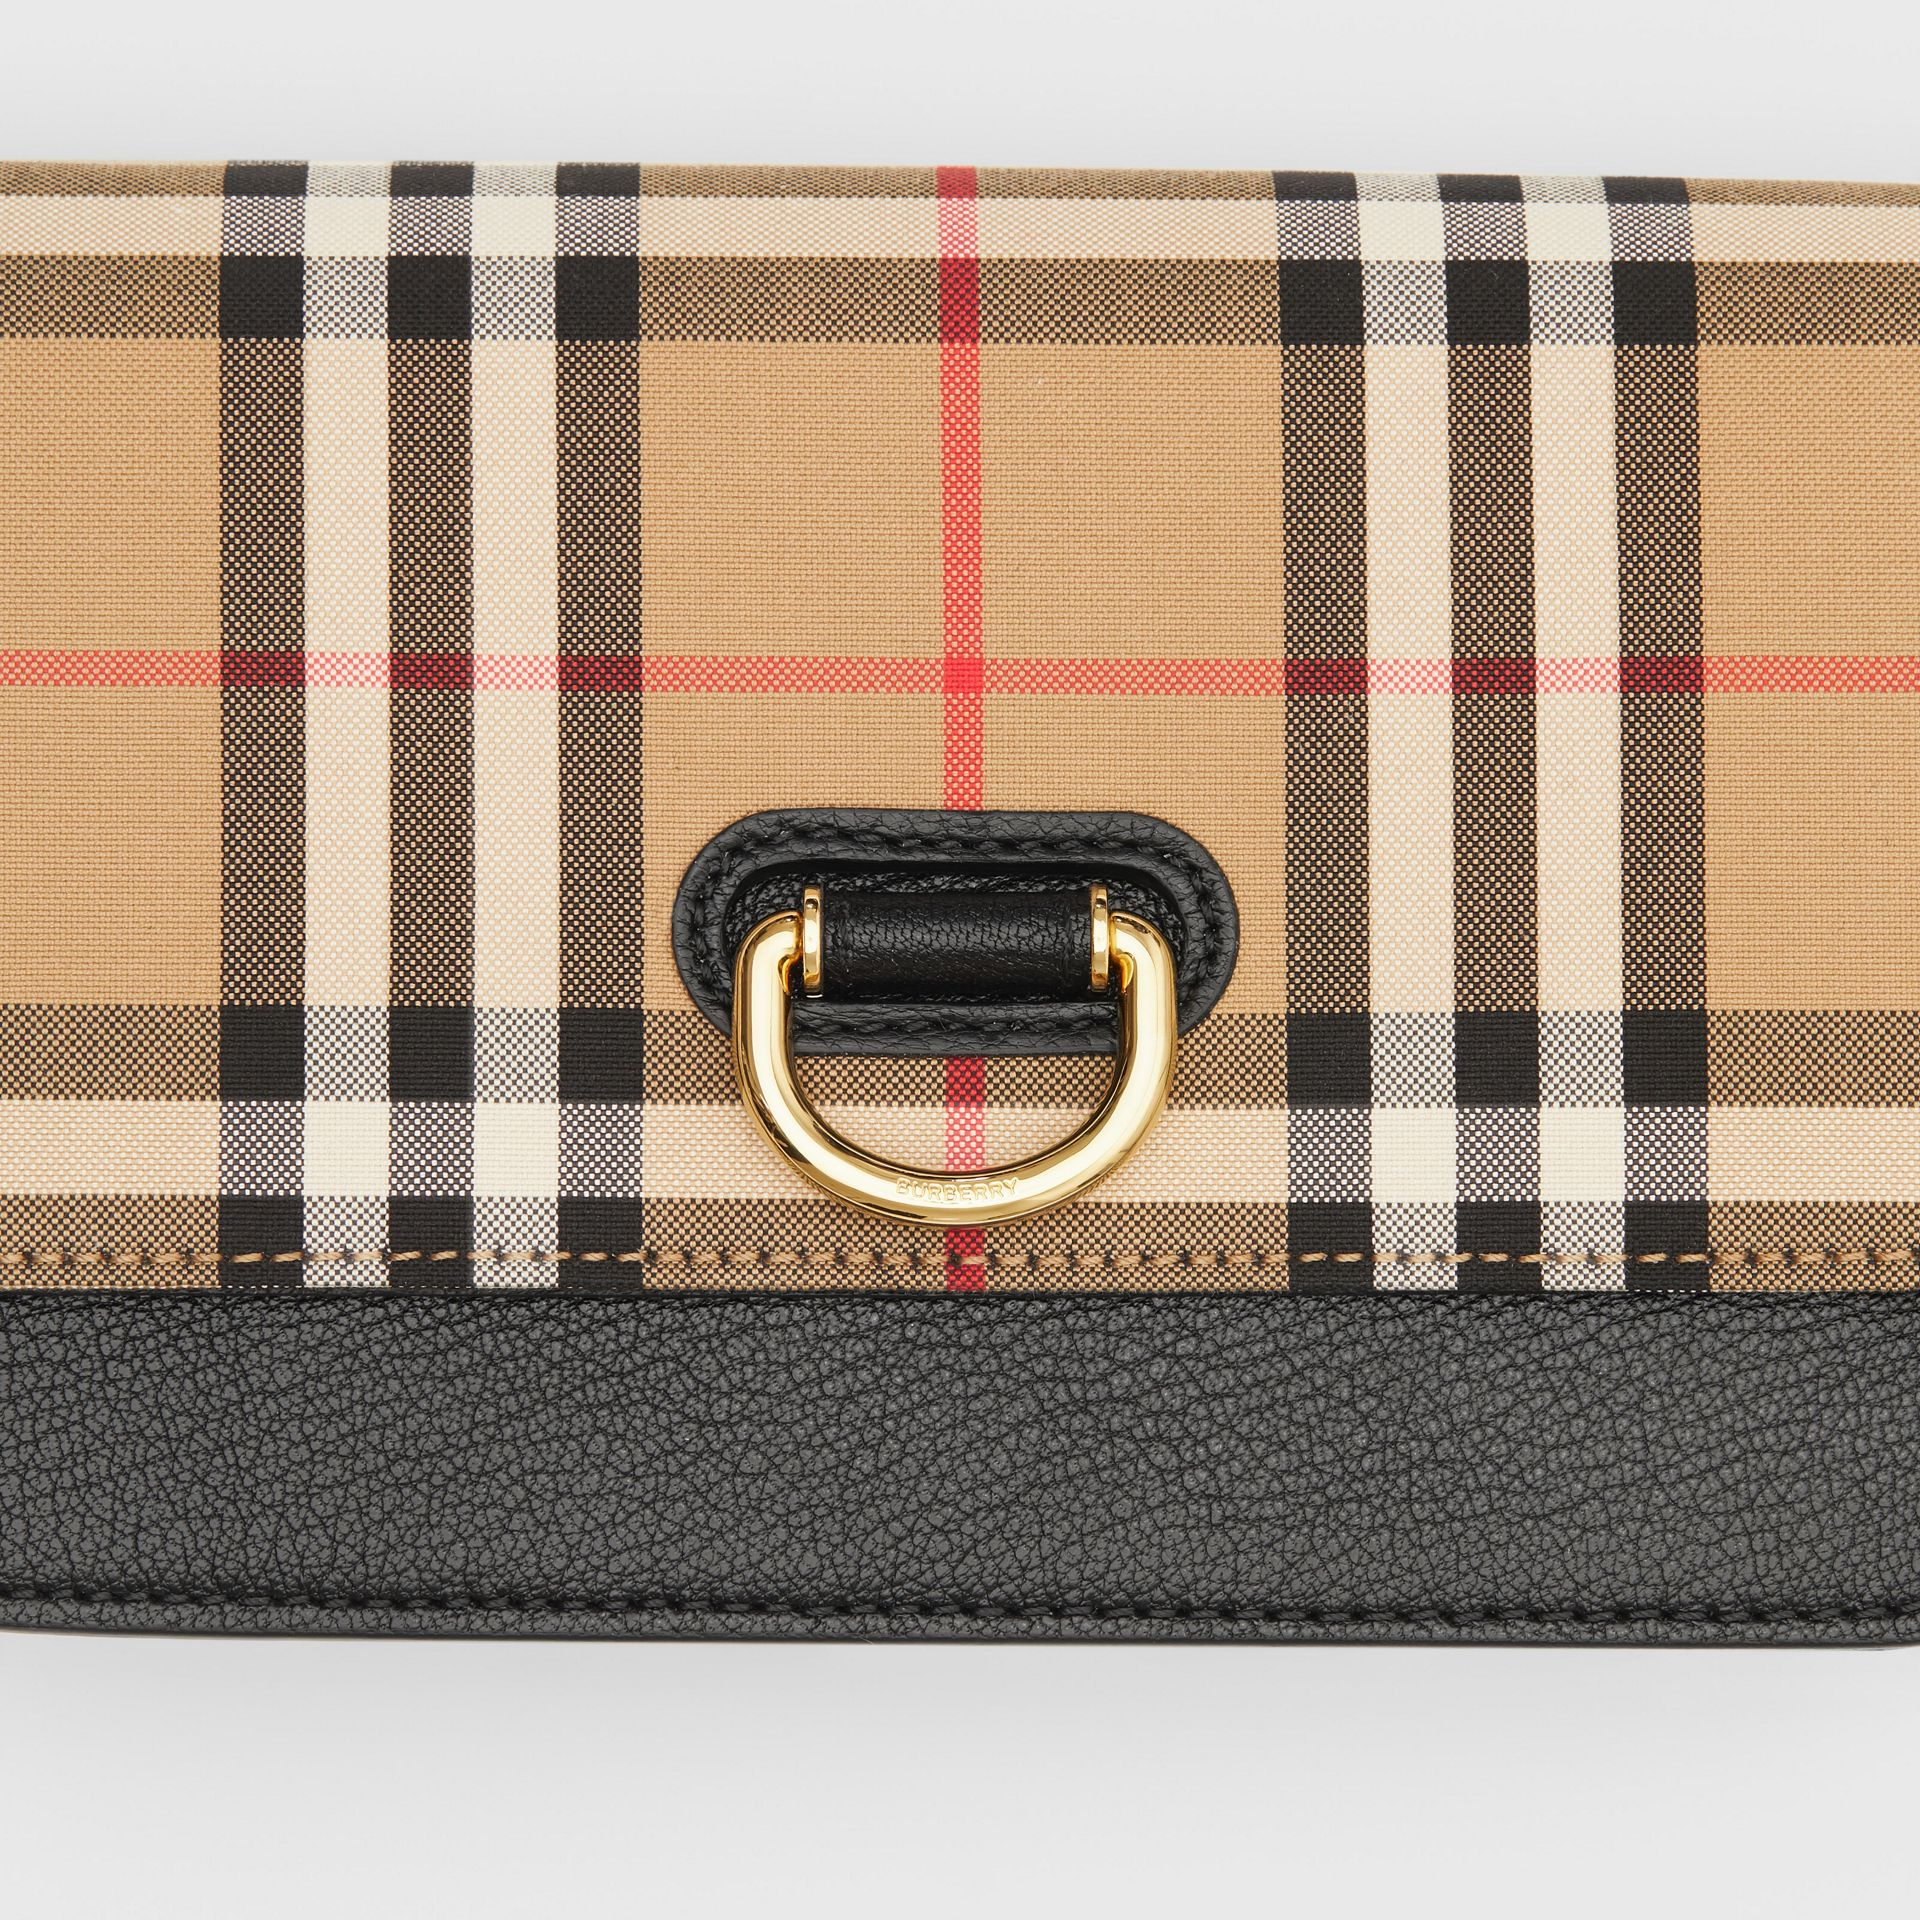 Mini sac The D-ring en cuir et Vintage check (Noir) - Femme | Burberry - photo de la galerie 1